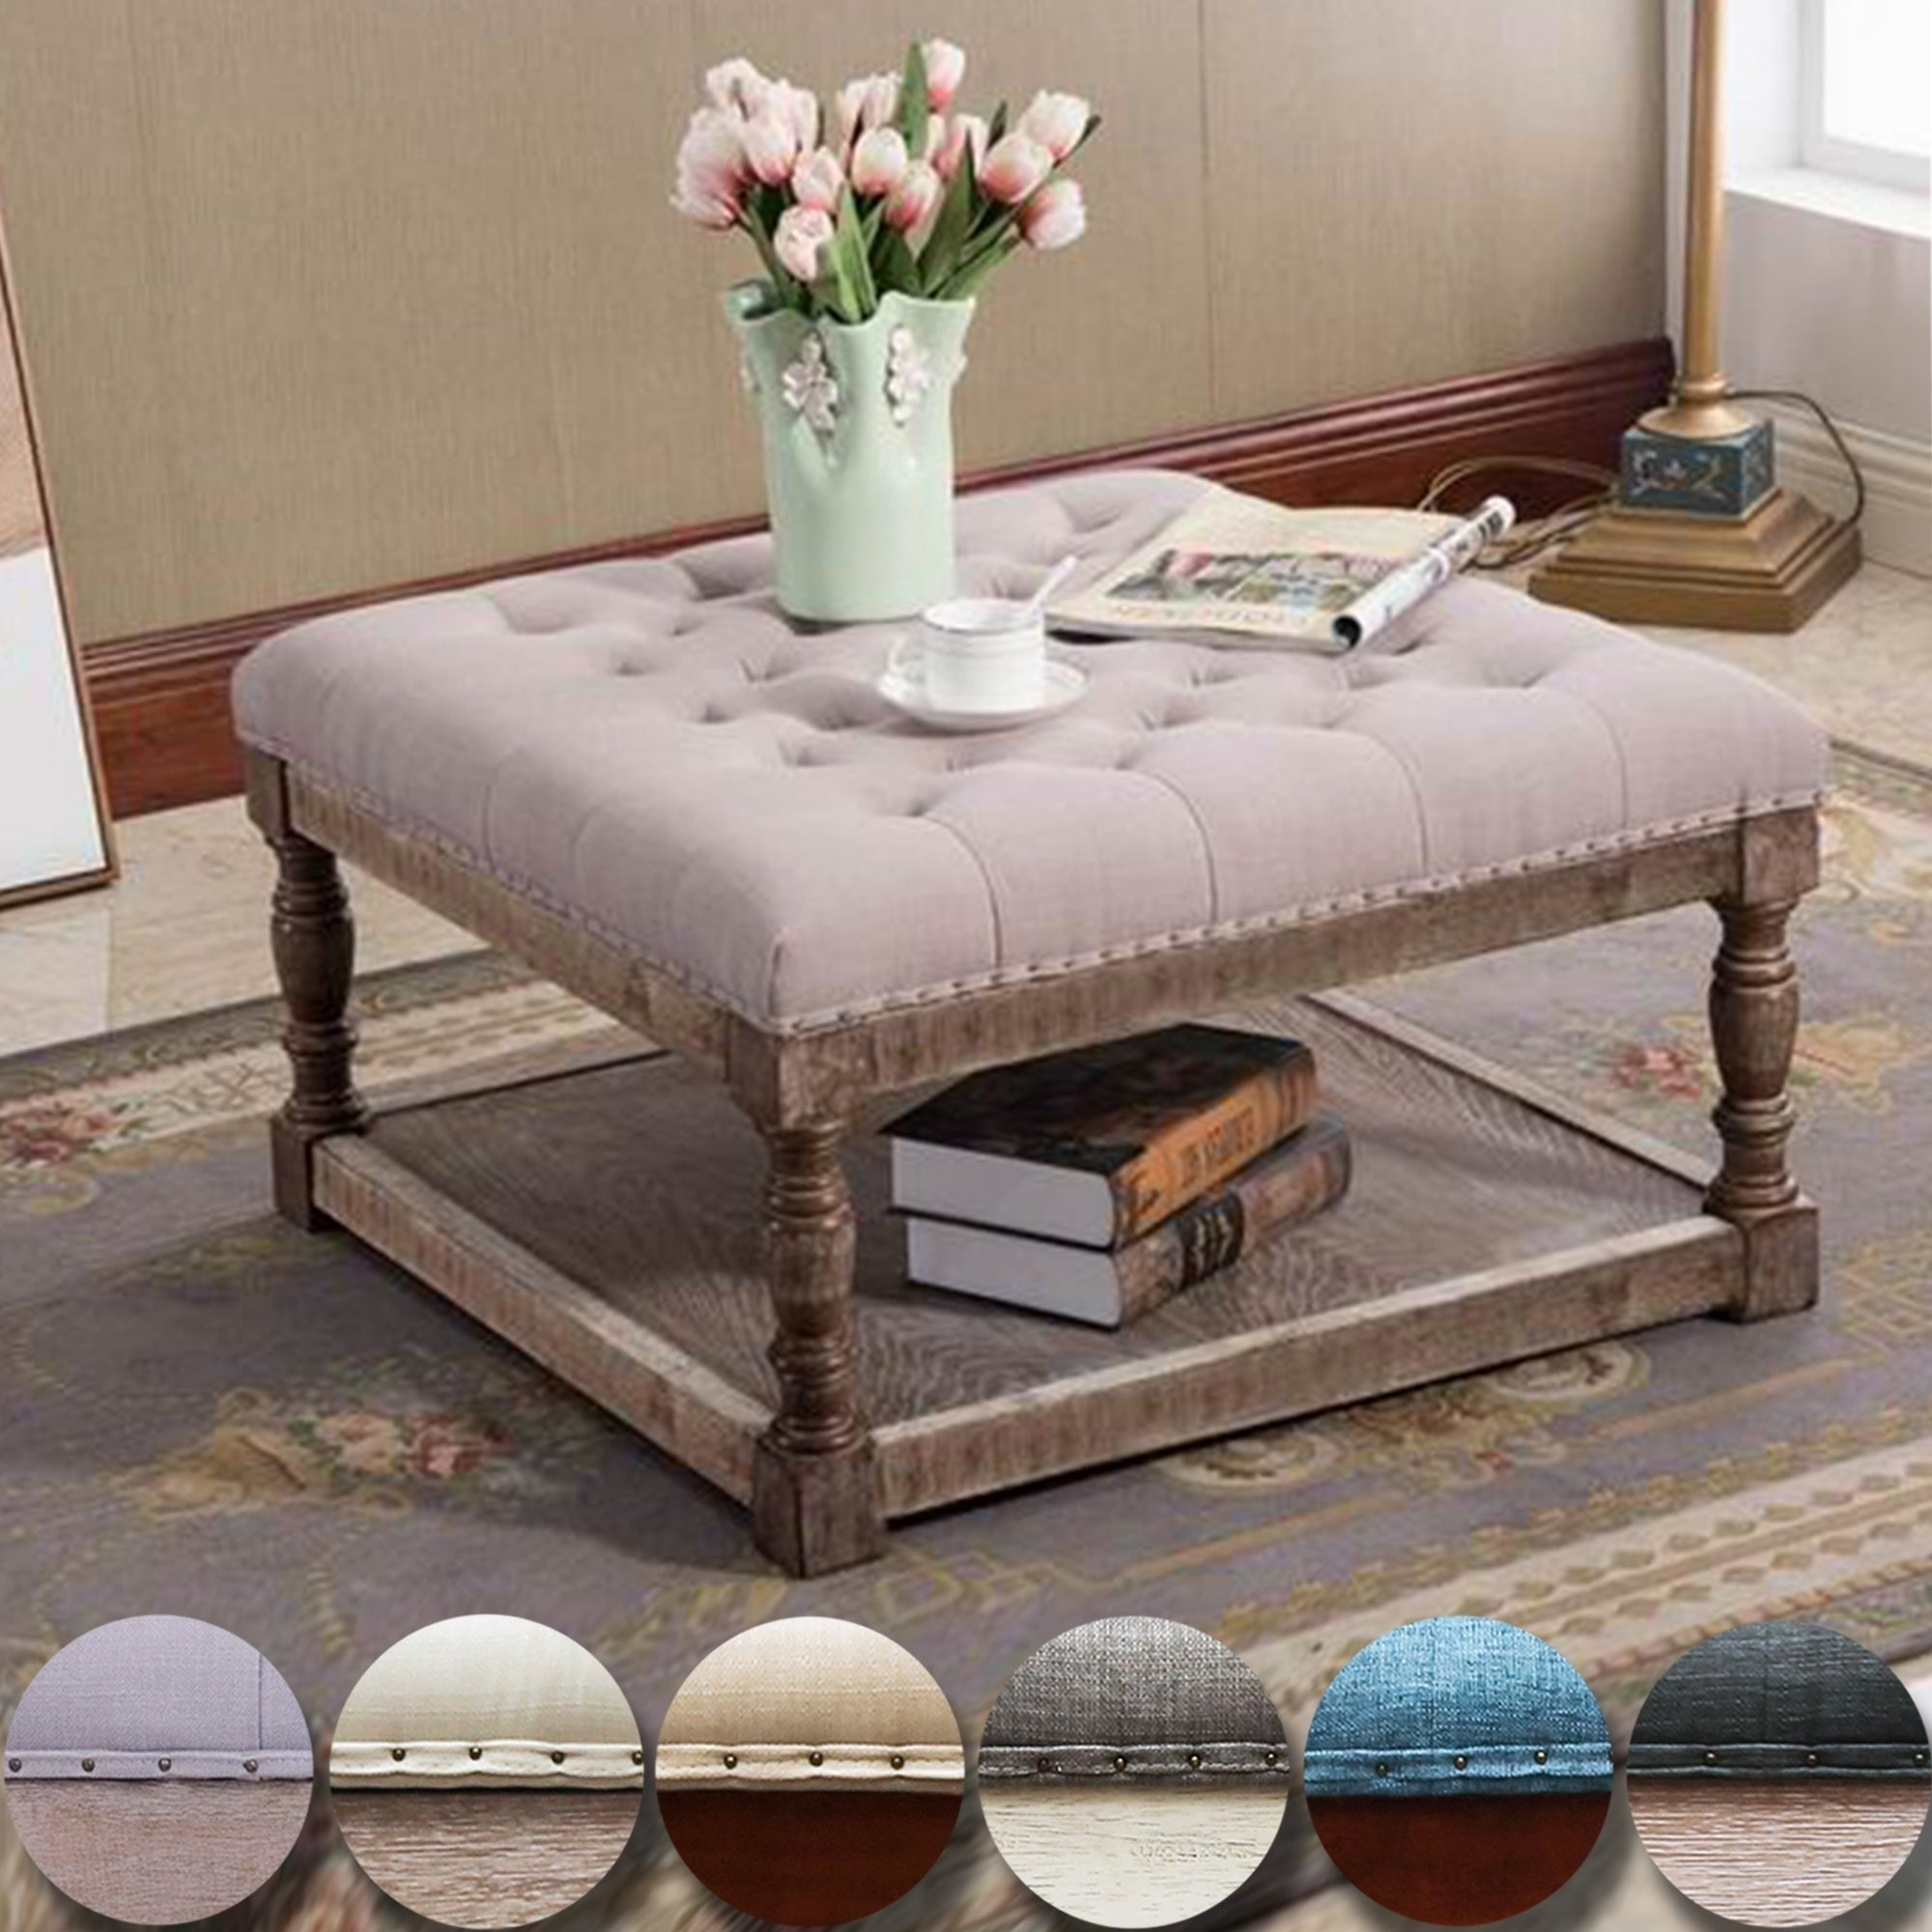 Cairona Fabric 30 Inch Tufted Shelved Ottoman Coffee Table Optional Colors